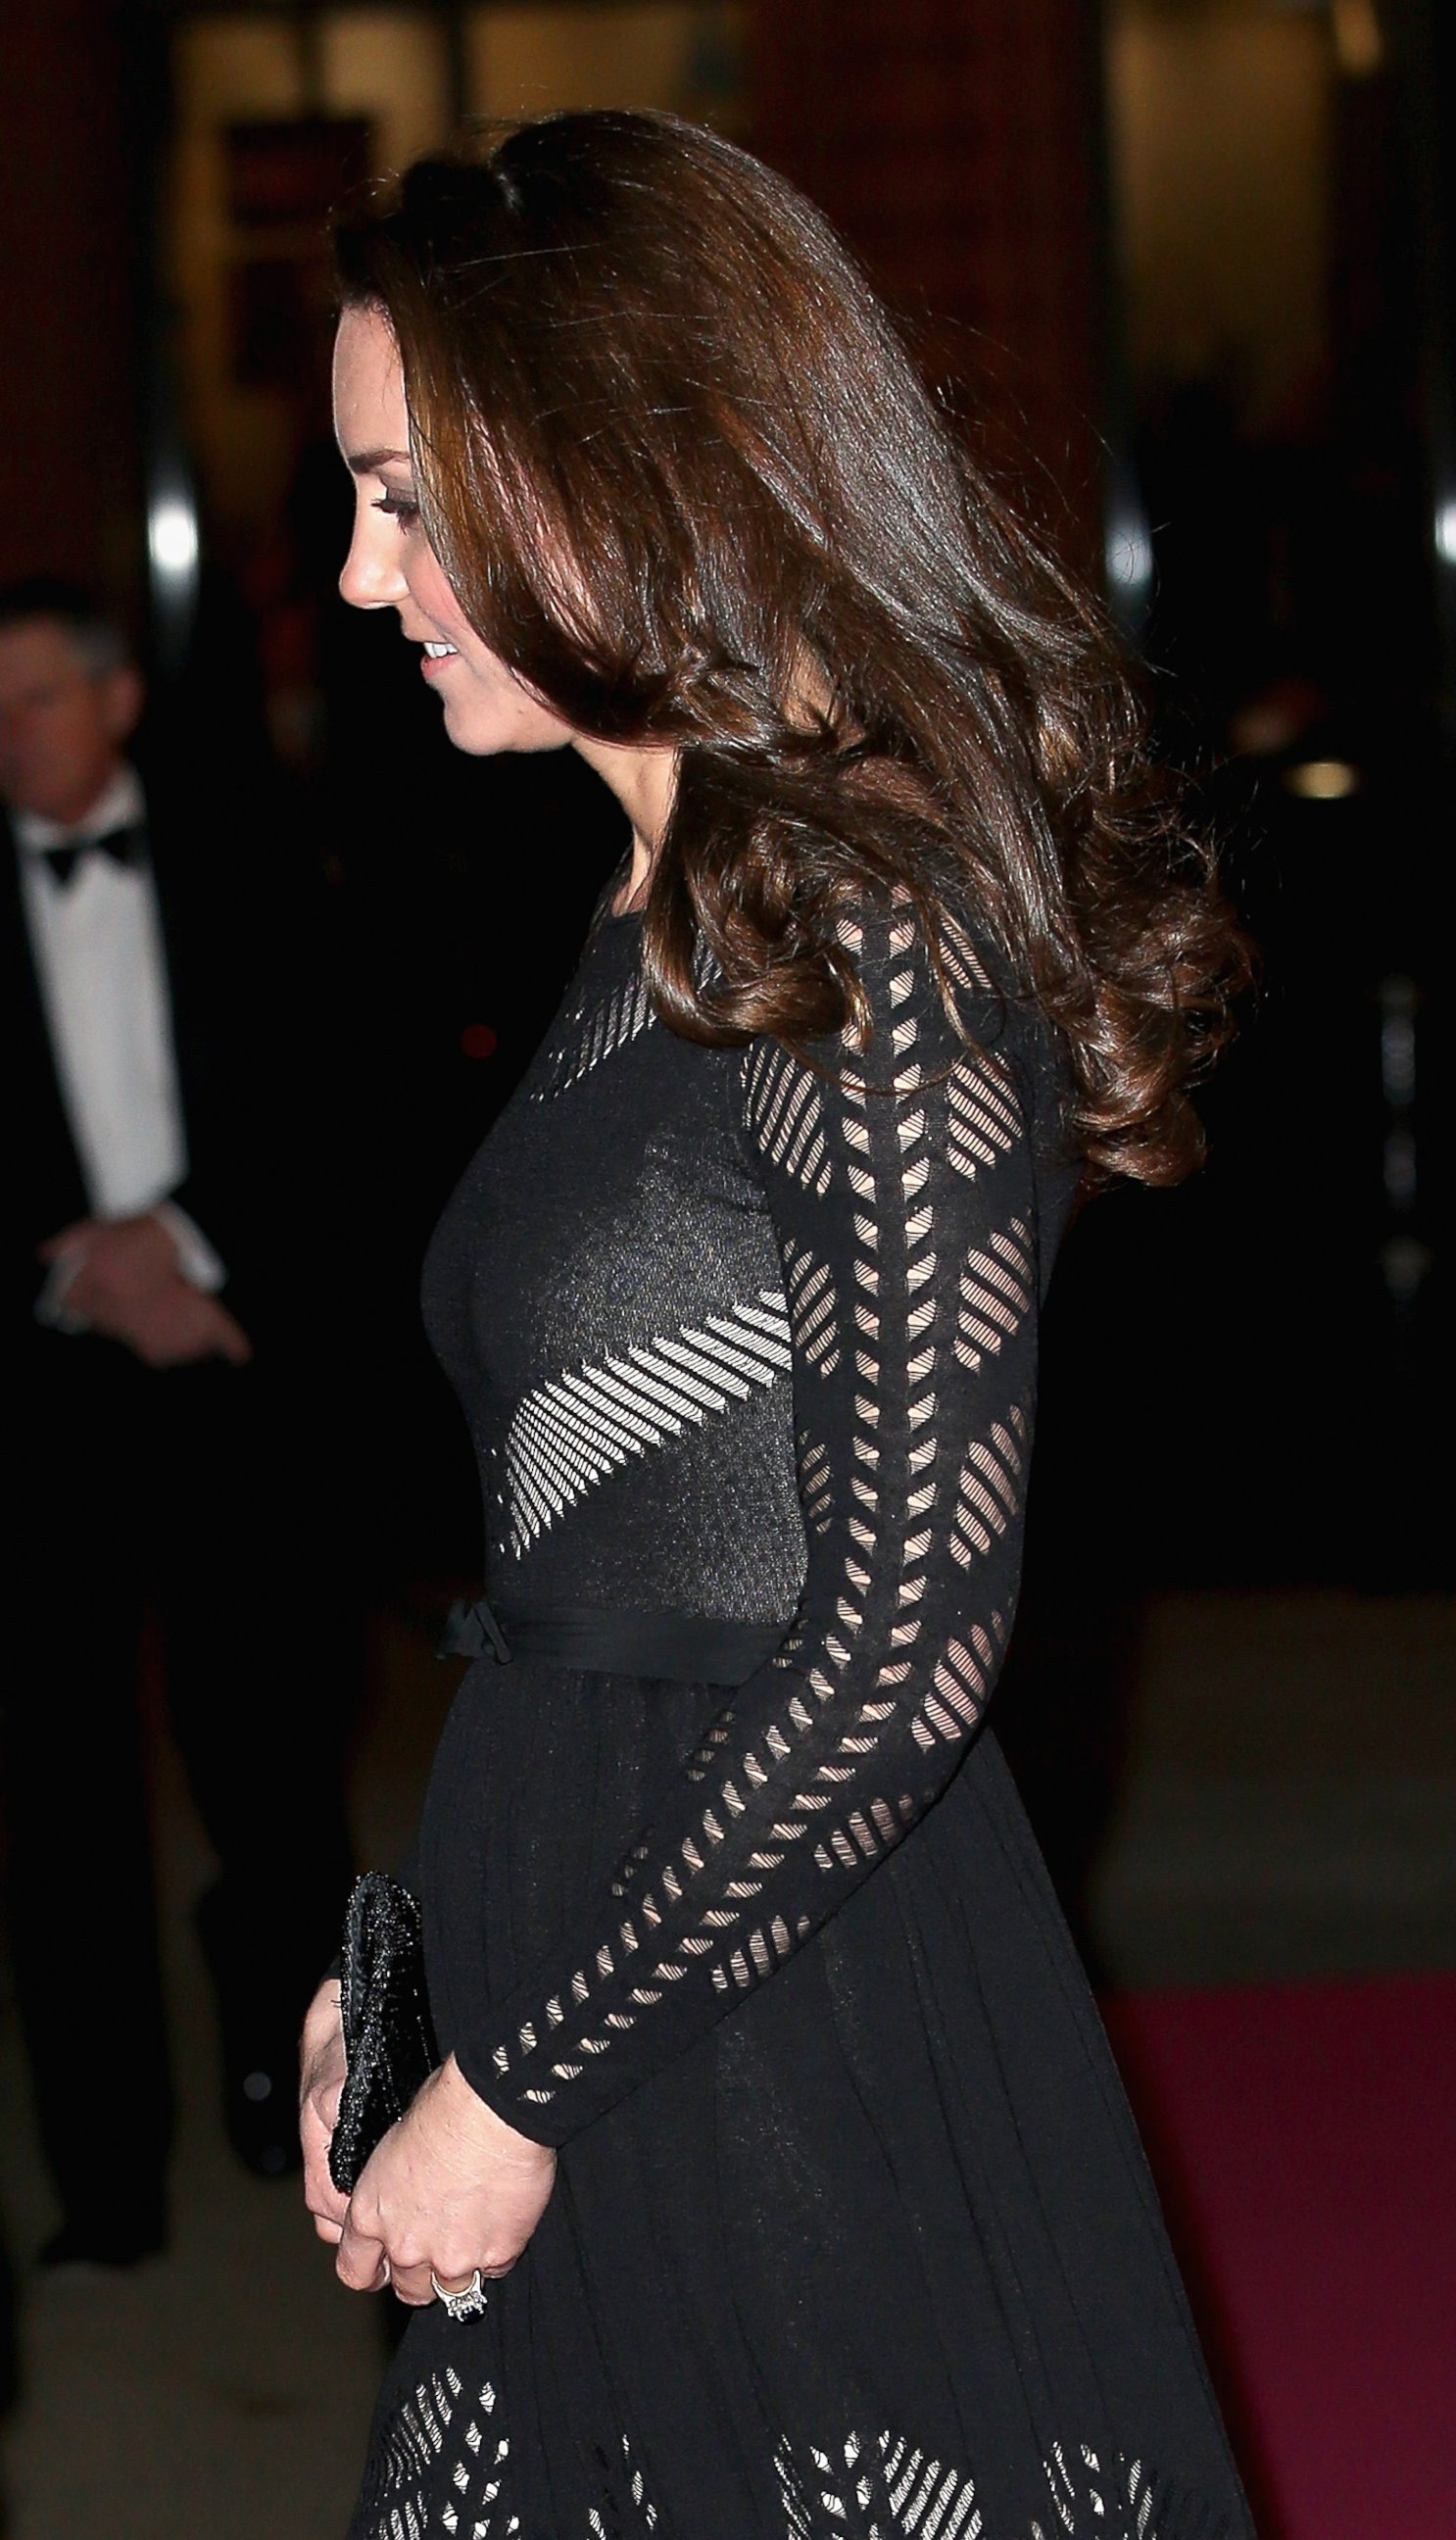 Kate Middleton Shows Off Her Baby Bump